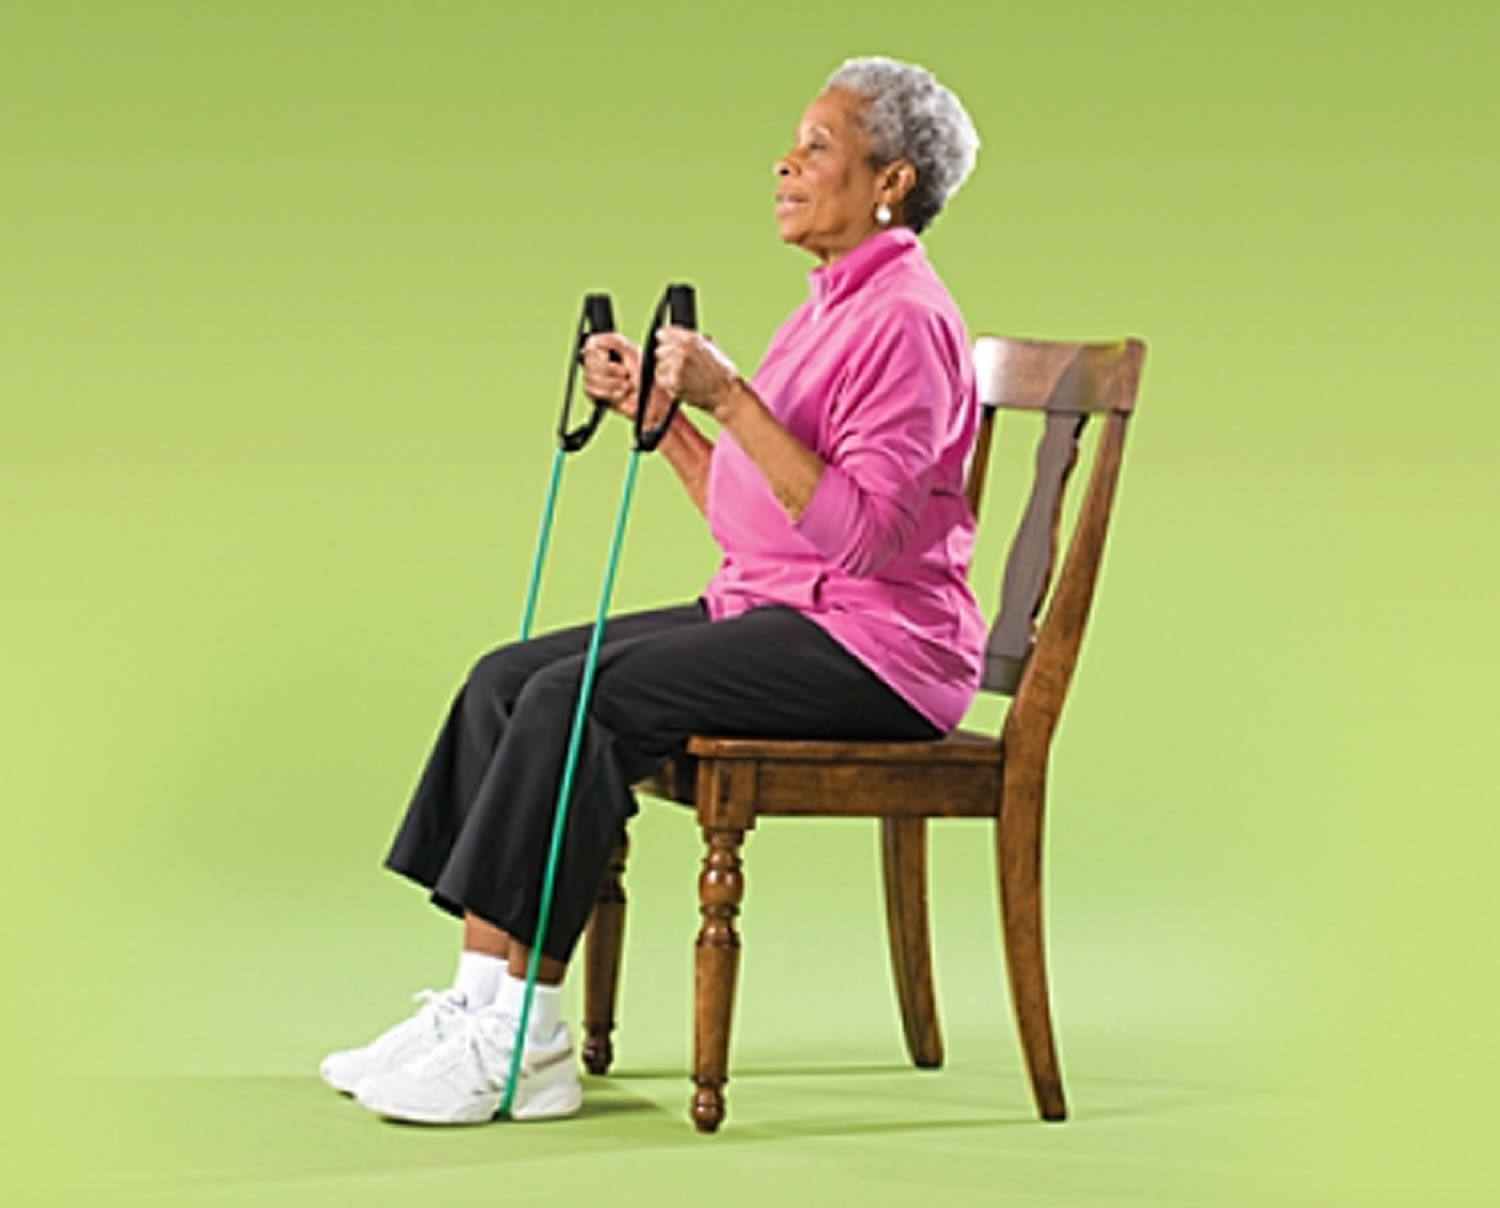 Arm Curl with Resistance Band Strength Exercise for Seniors